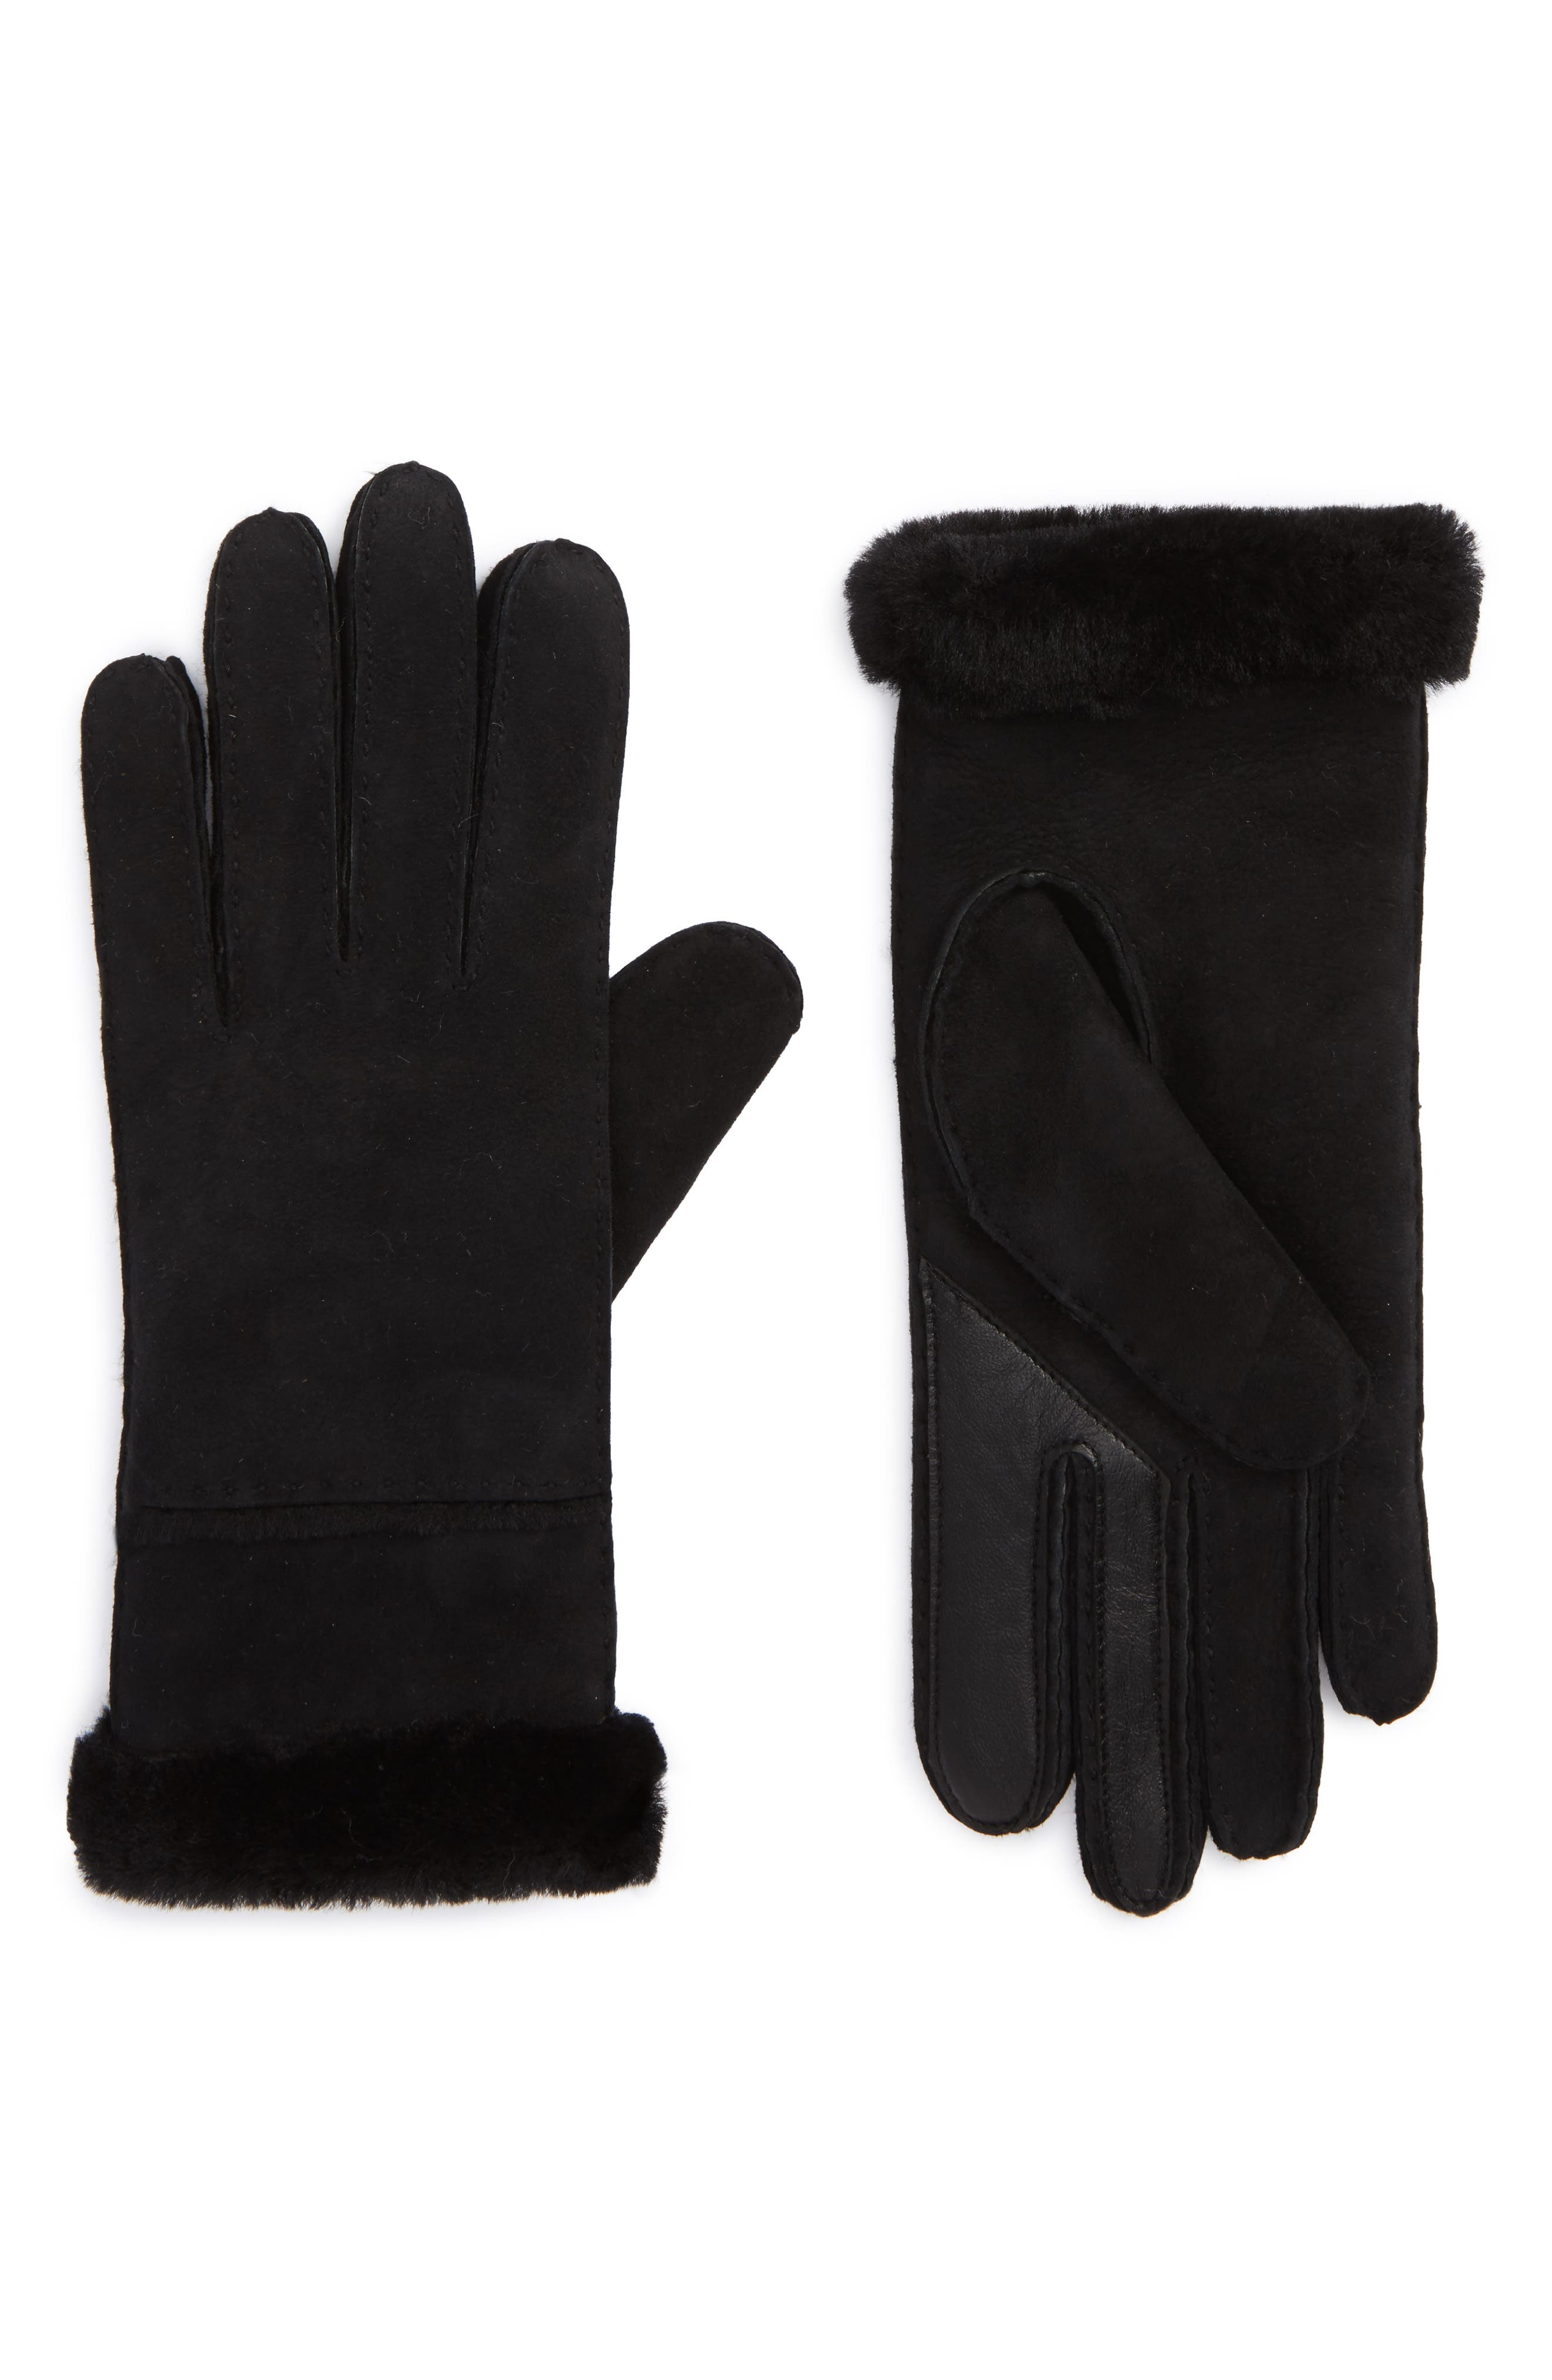 UGG<sup>®</sup> Slim Genuine Shearling Tech Gloves,                         Main,                         color, 001